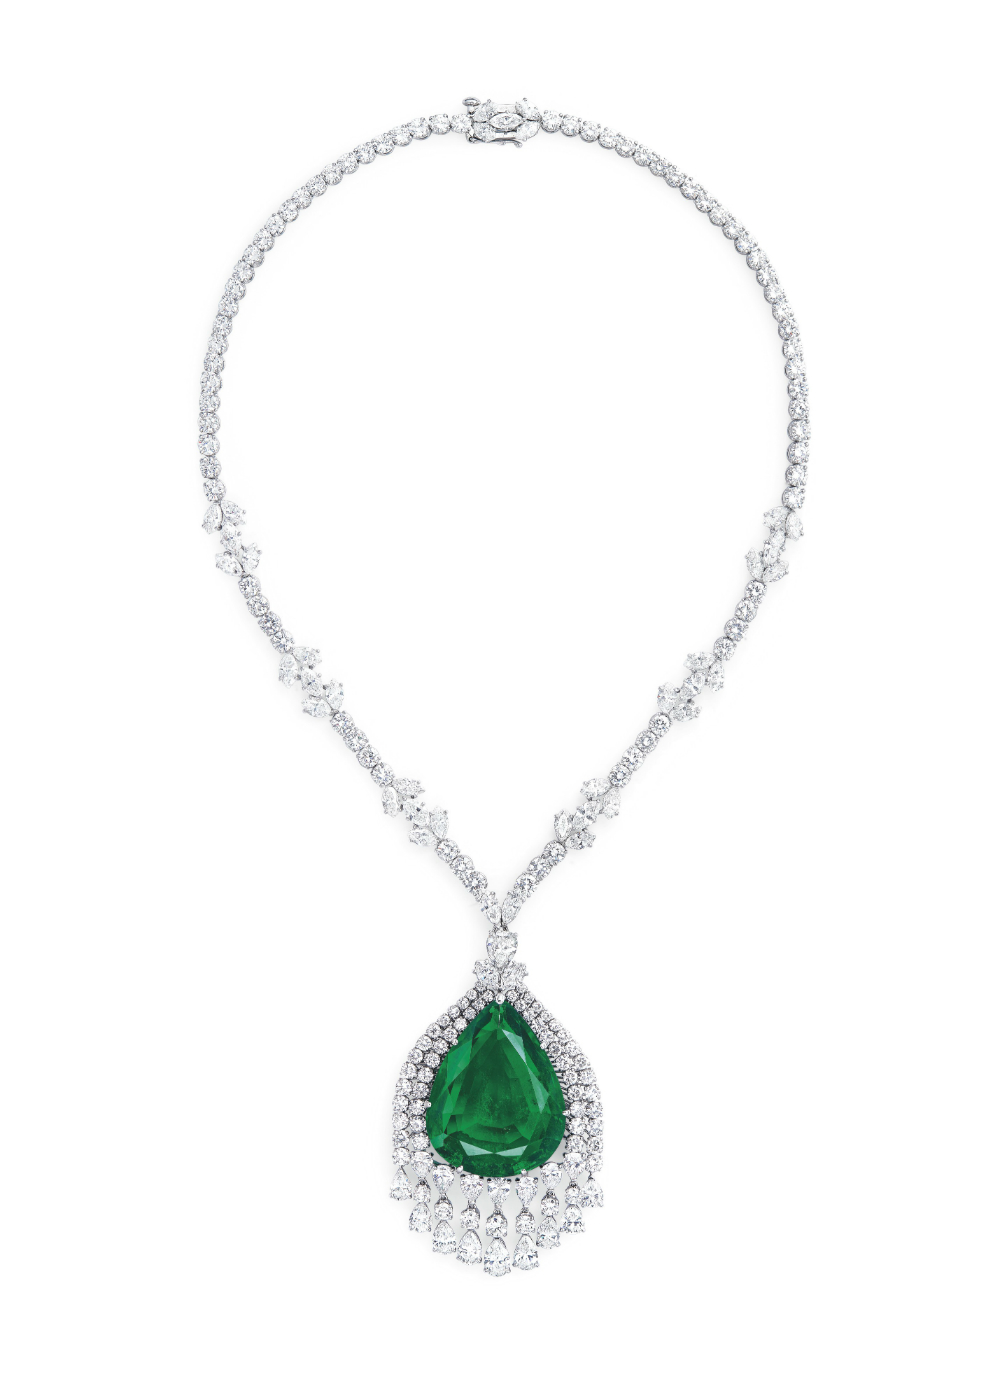 The emerald was cut from a rectangle to its current pear shape in order to enhance its natural brilliance.